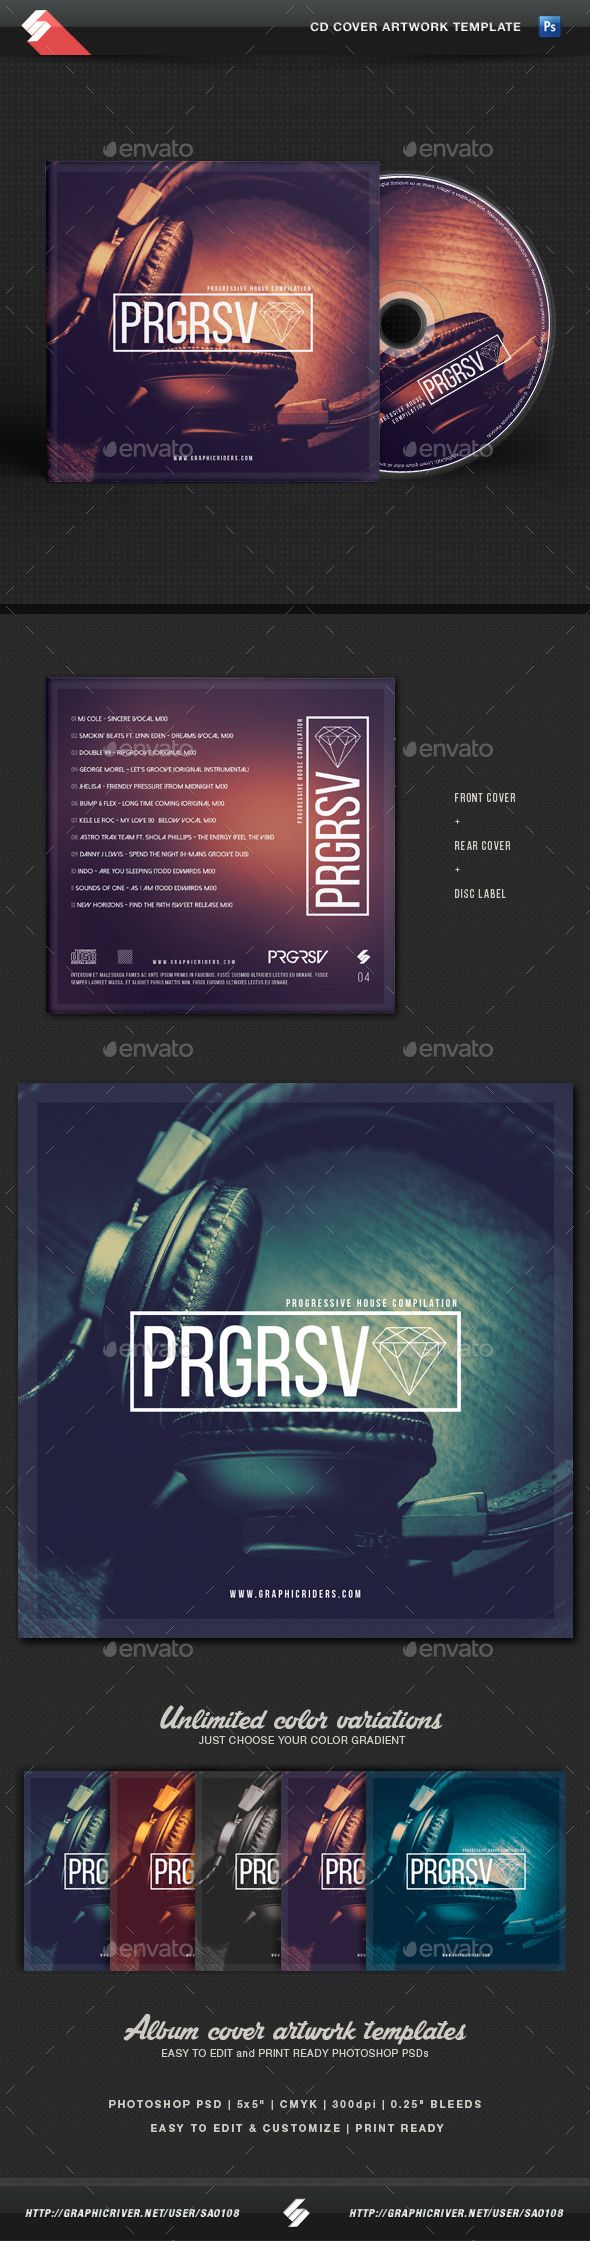 Progressive Sound - CD Cover Template